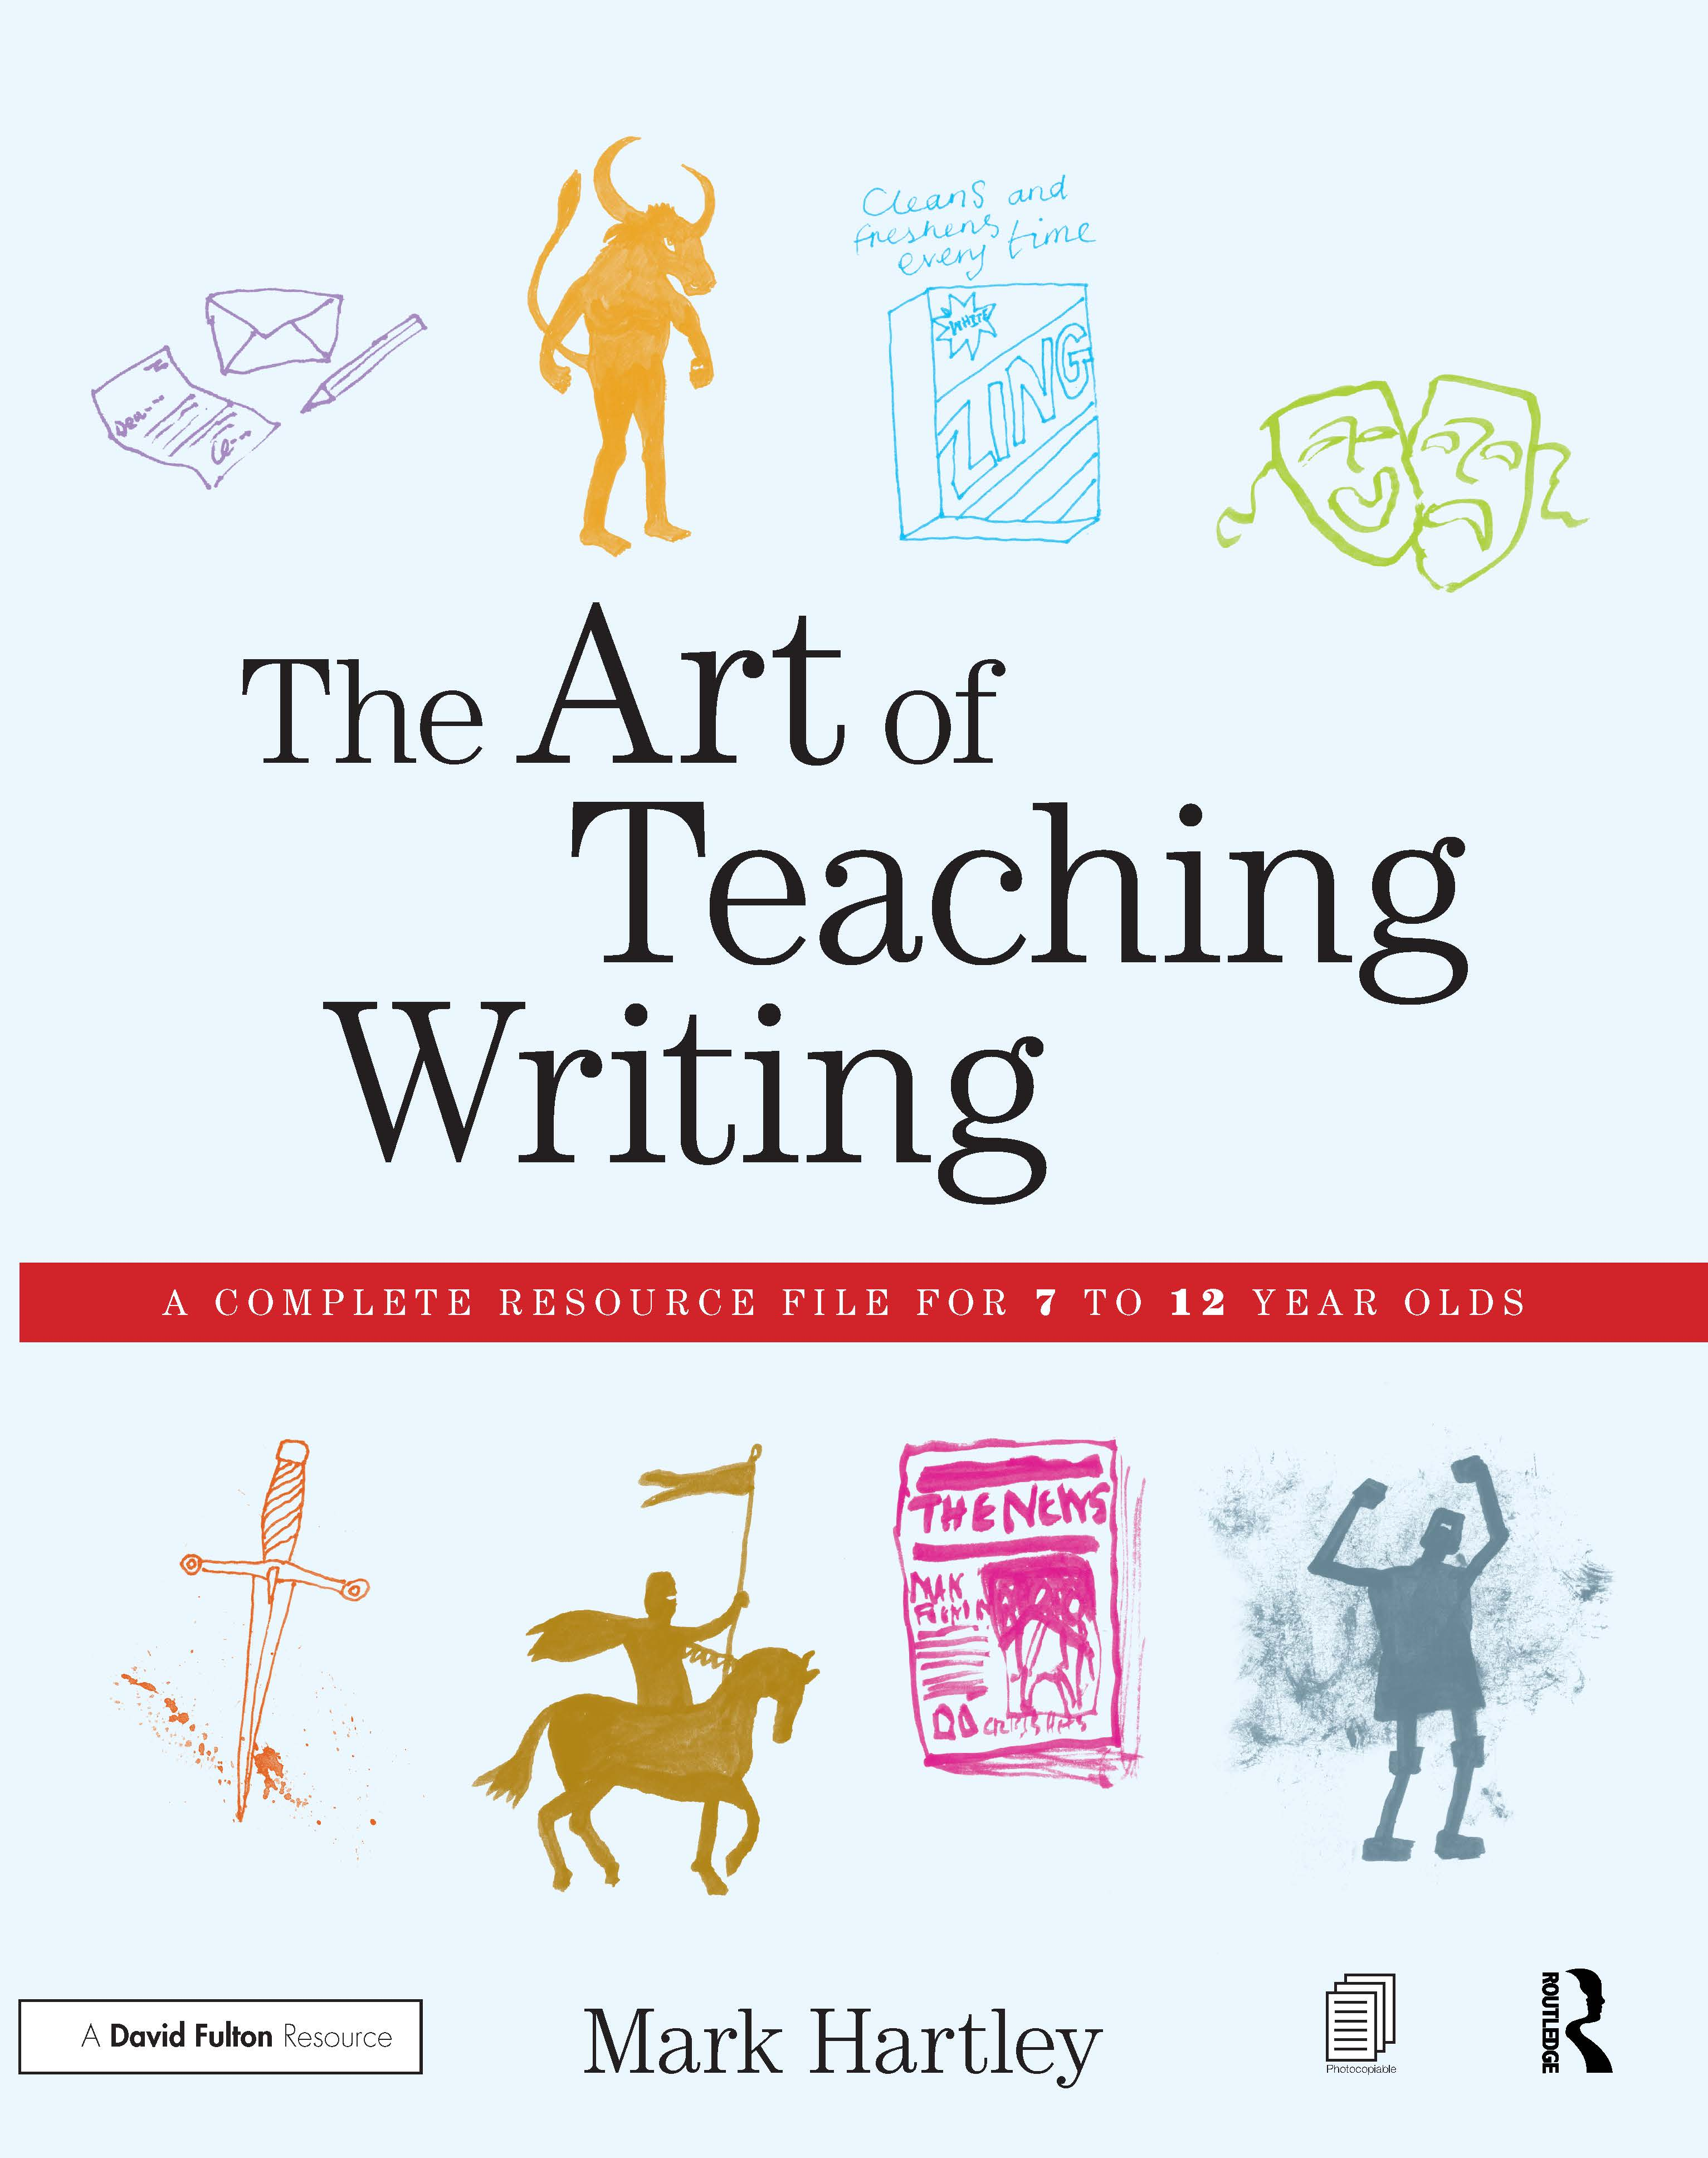 The Art of Teaching Writing: A complete resource file for 7 to 12 year olds (Pack) book cover